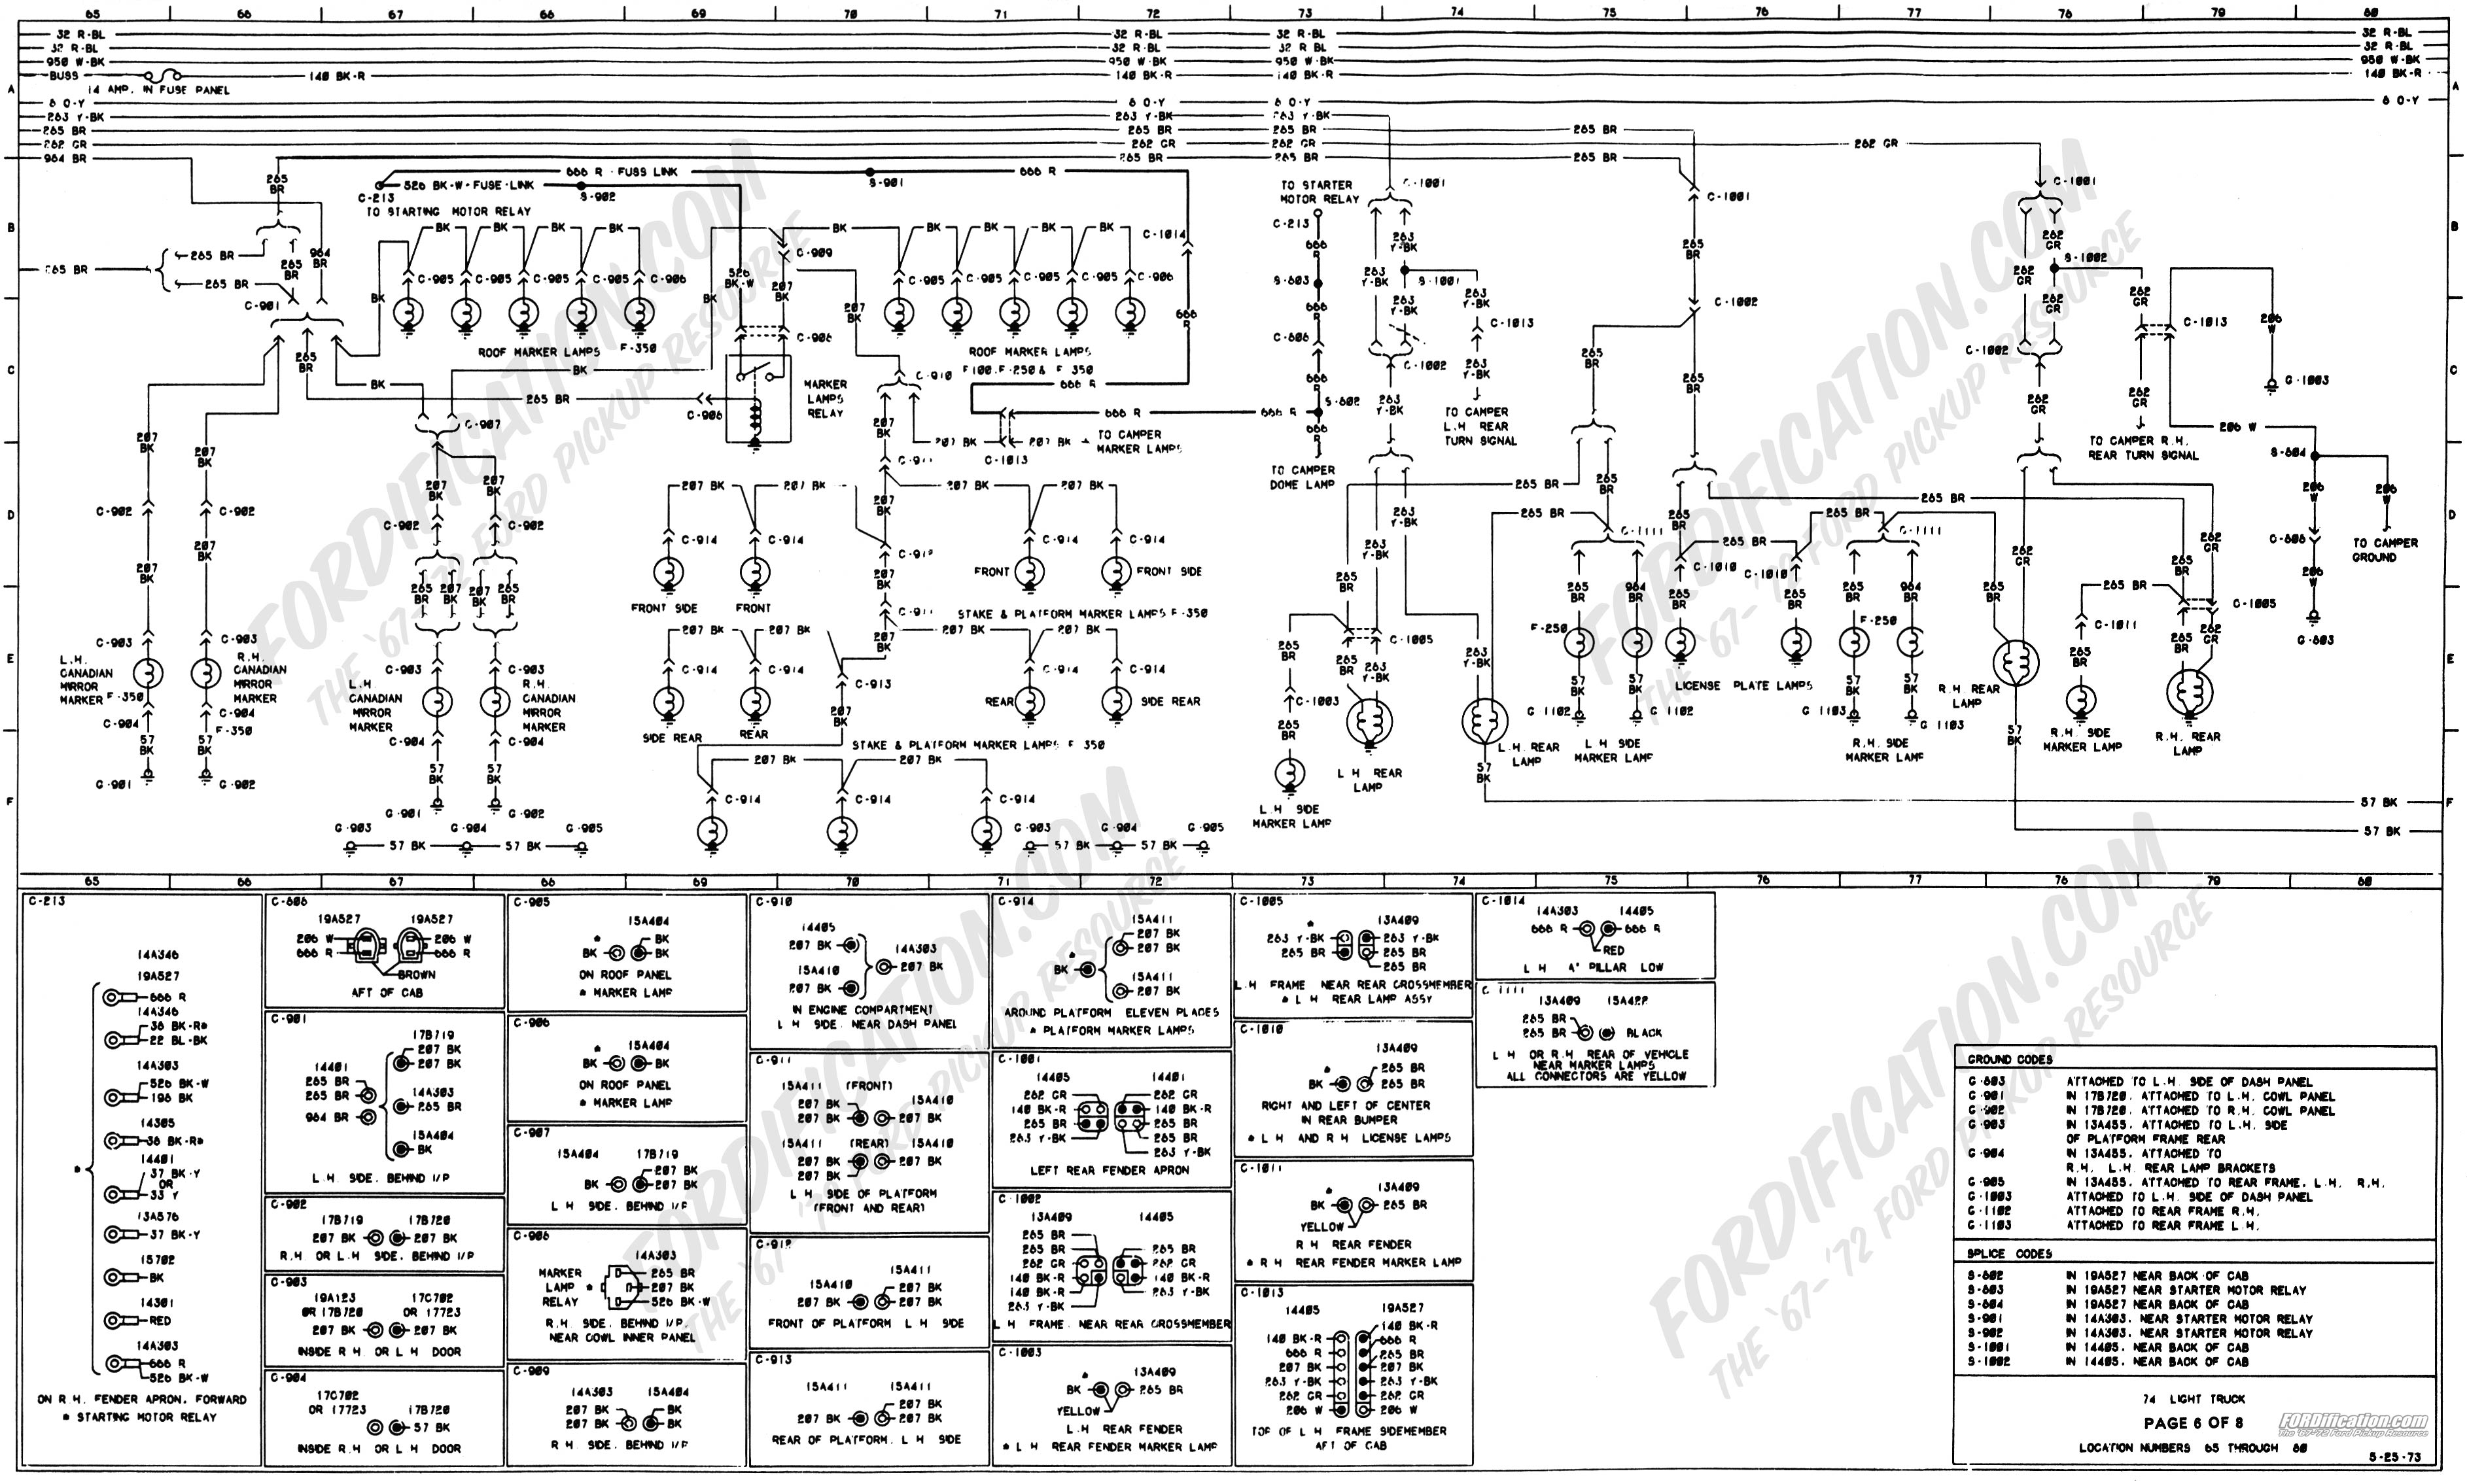 1979 ford f150 wiring harness 1979 auto wiring diagram database 1973 1979 ford truck wiring diagrams schematics fordification net on 1979 ford f150 wiring harness